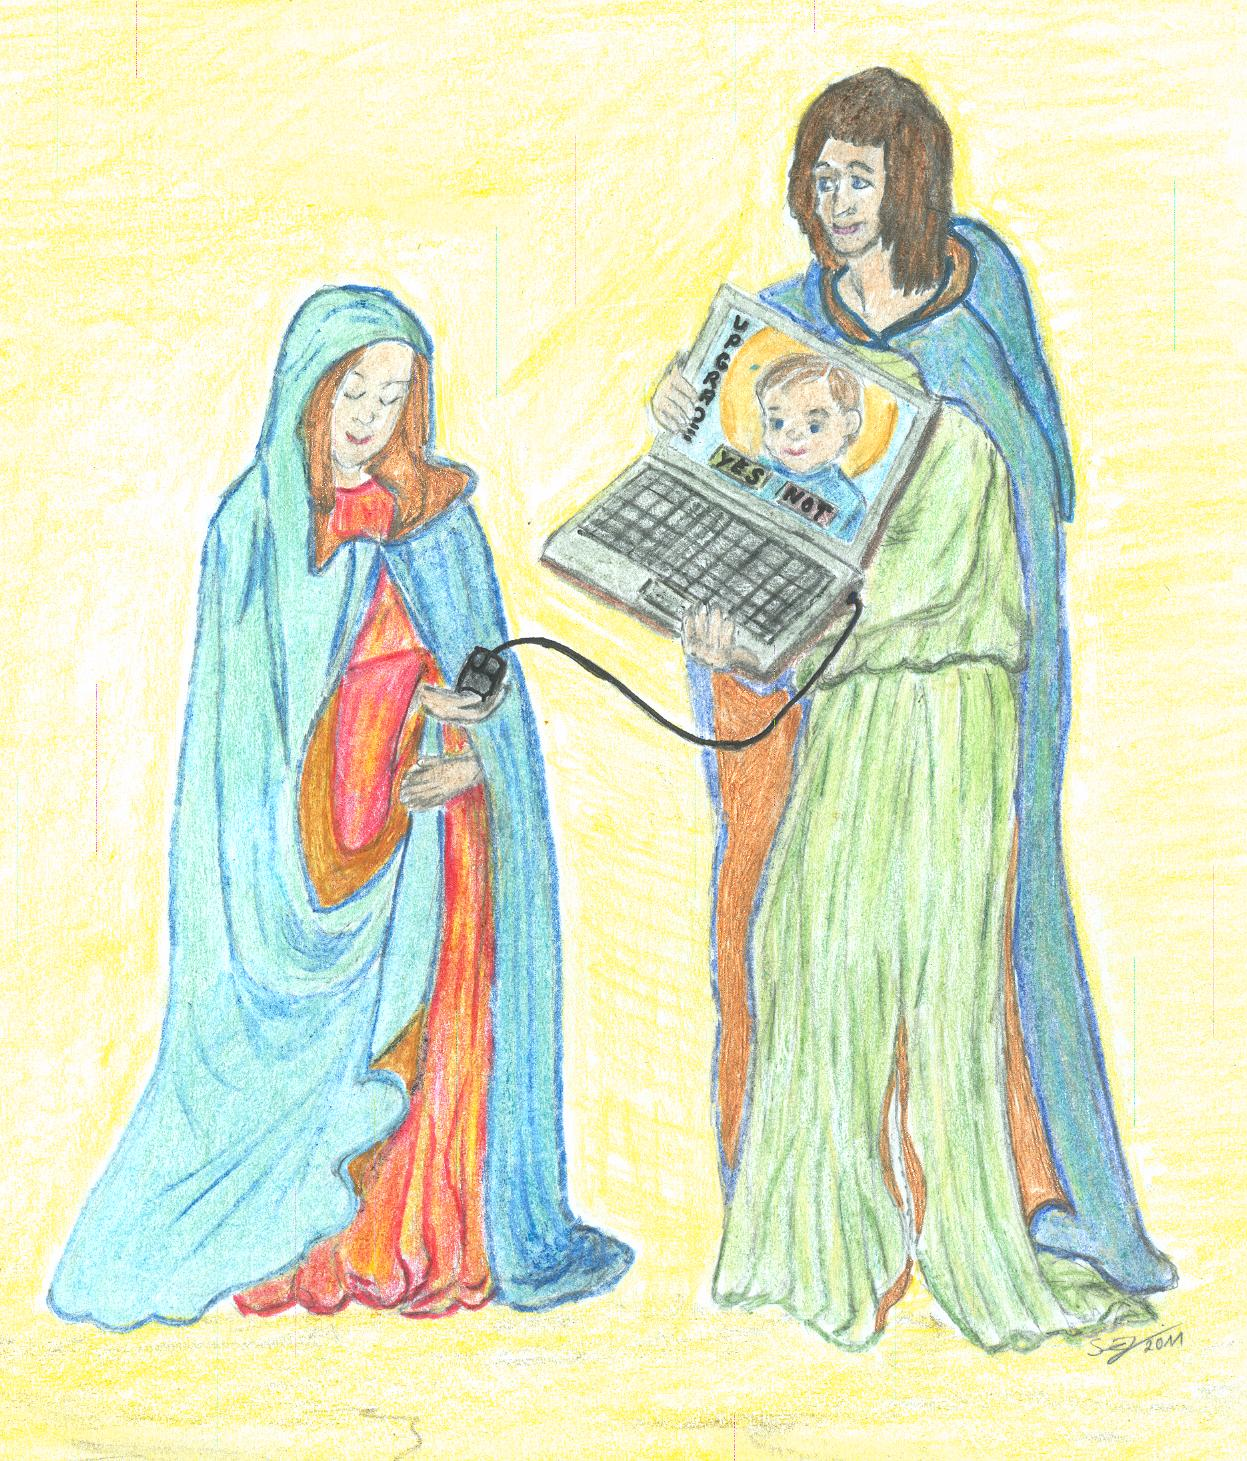 The Christ Child: A Plug and Play Upgrade for Humanity